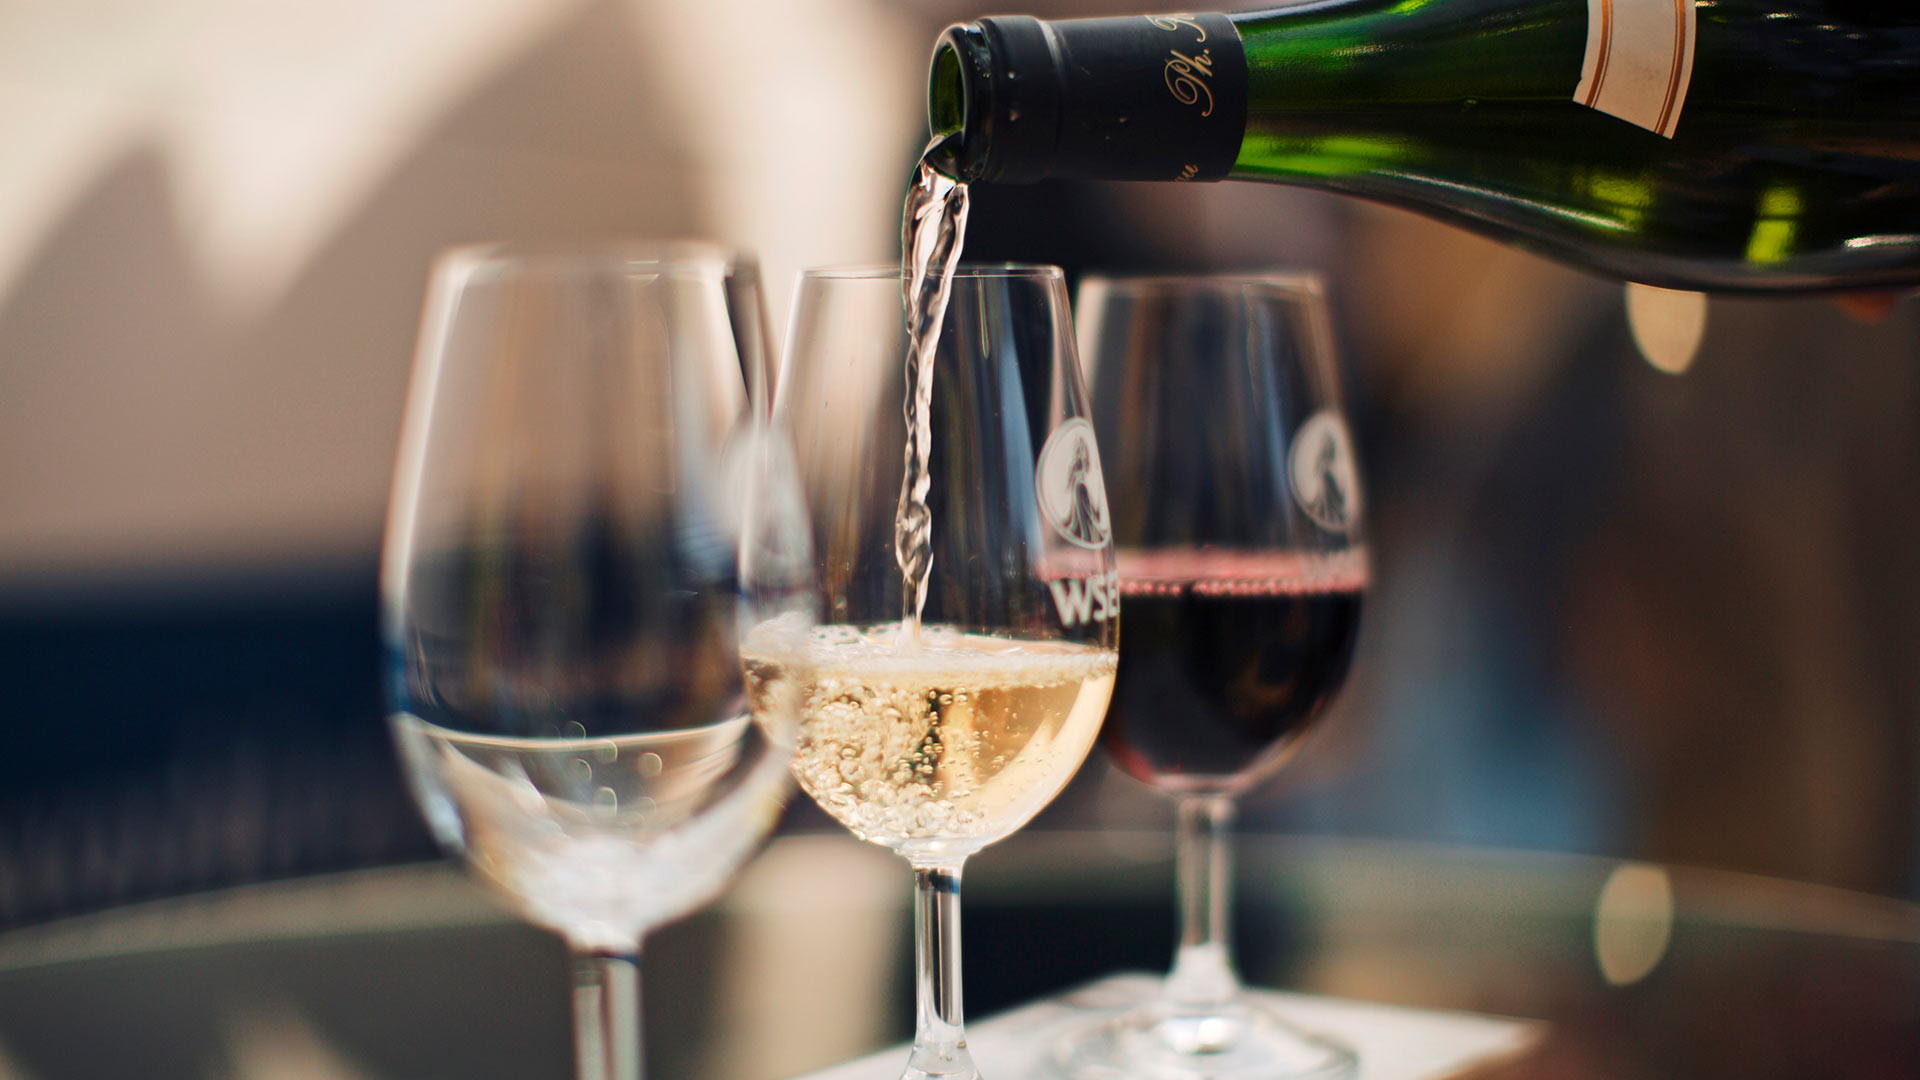 Develop your wine-tasting palate with WSET